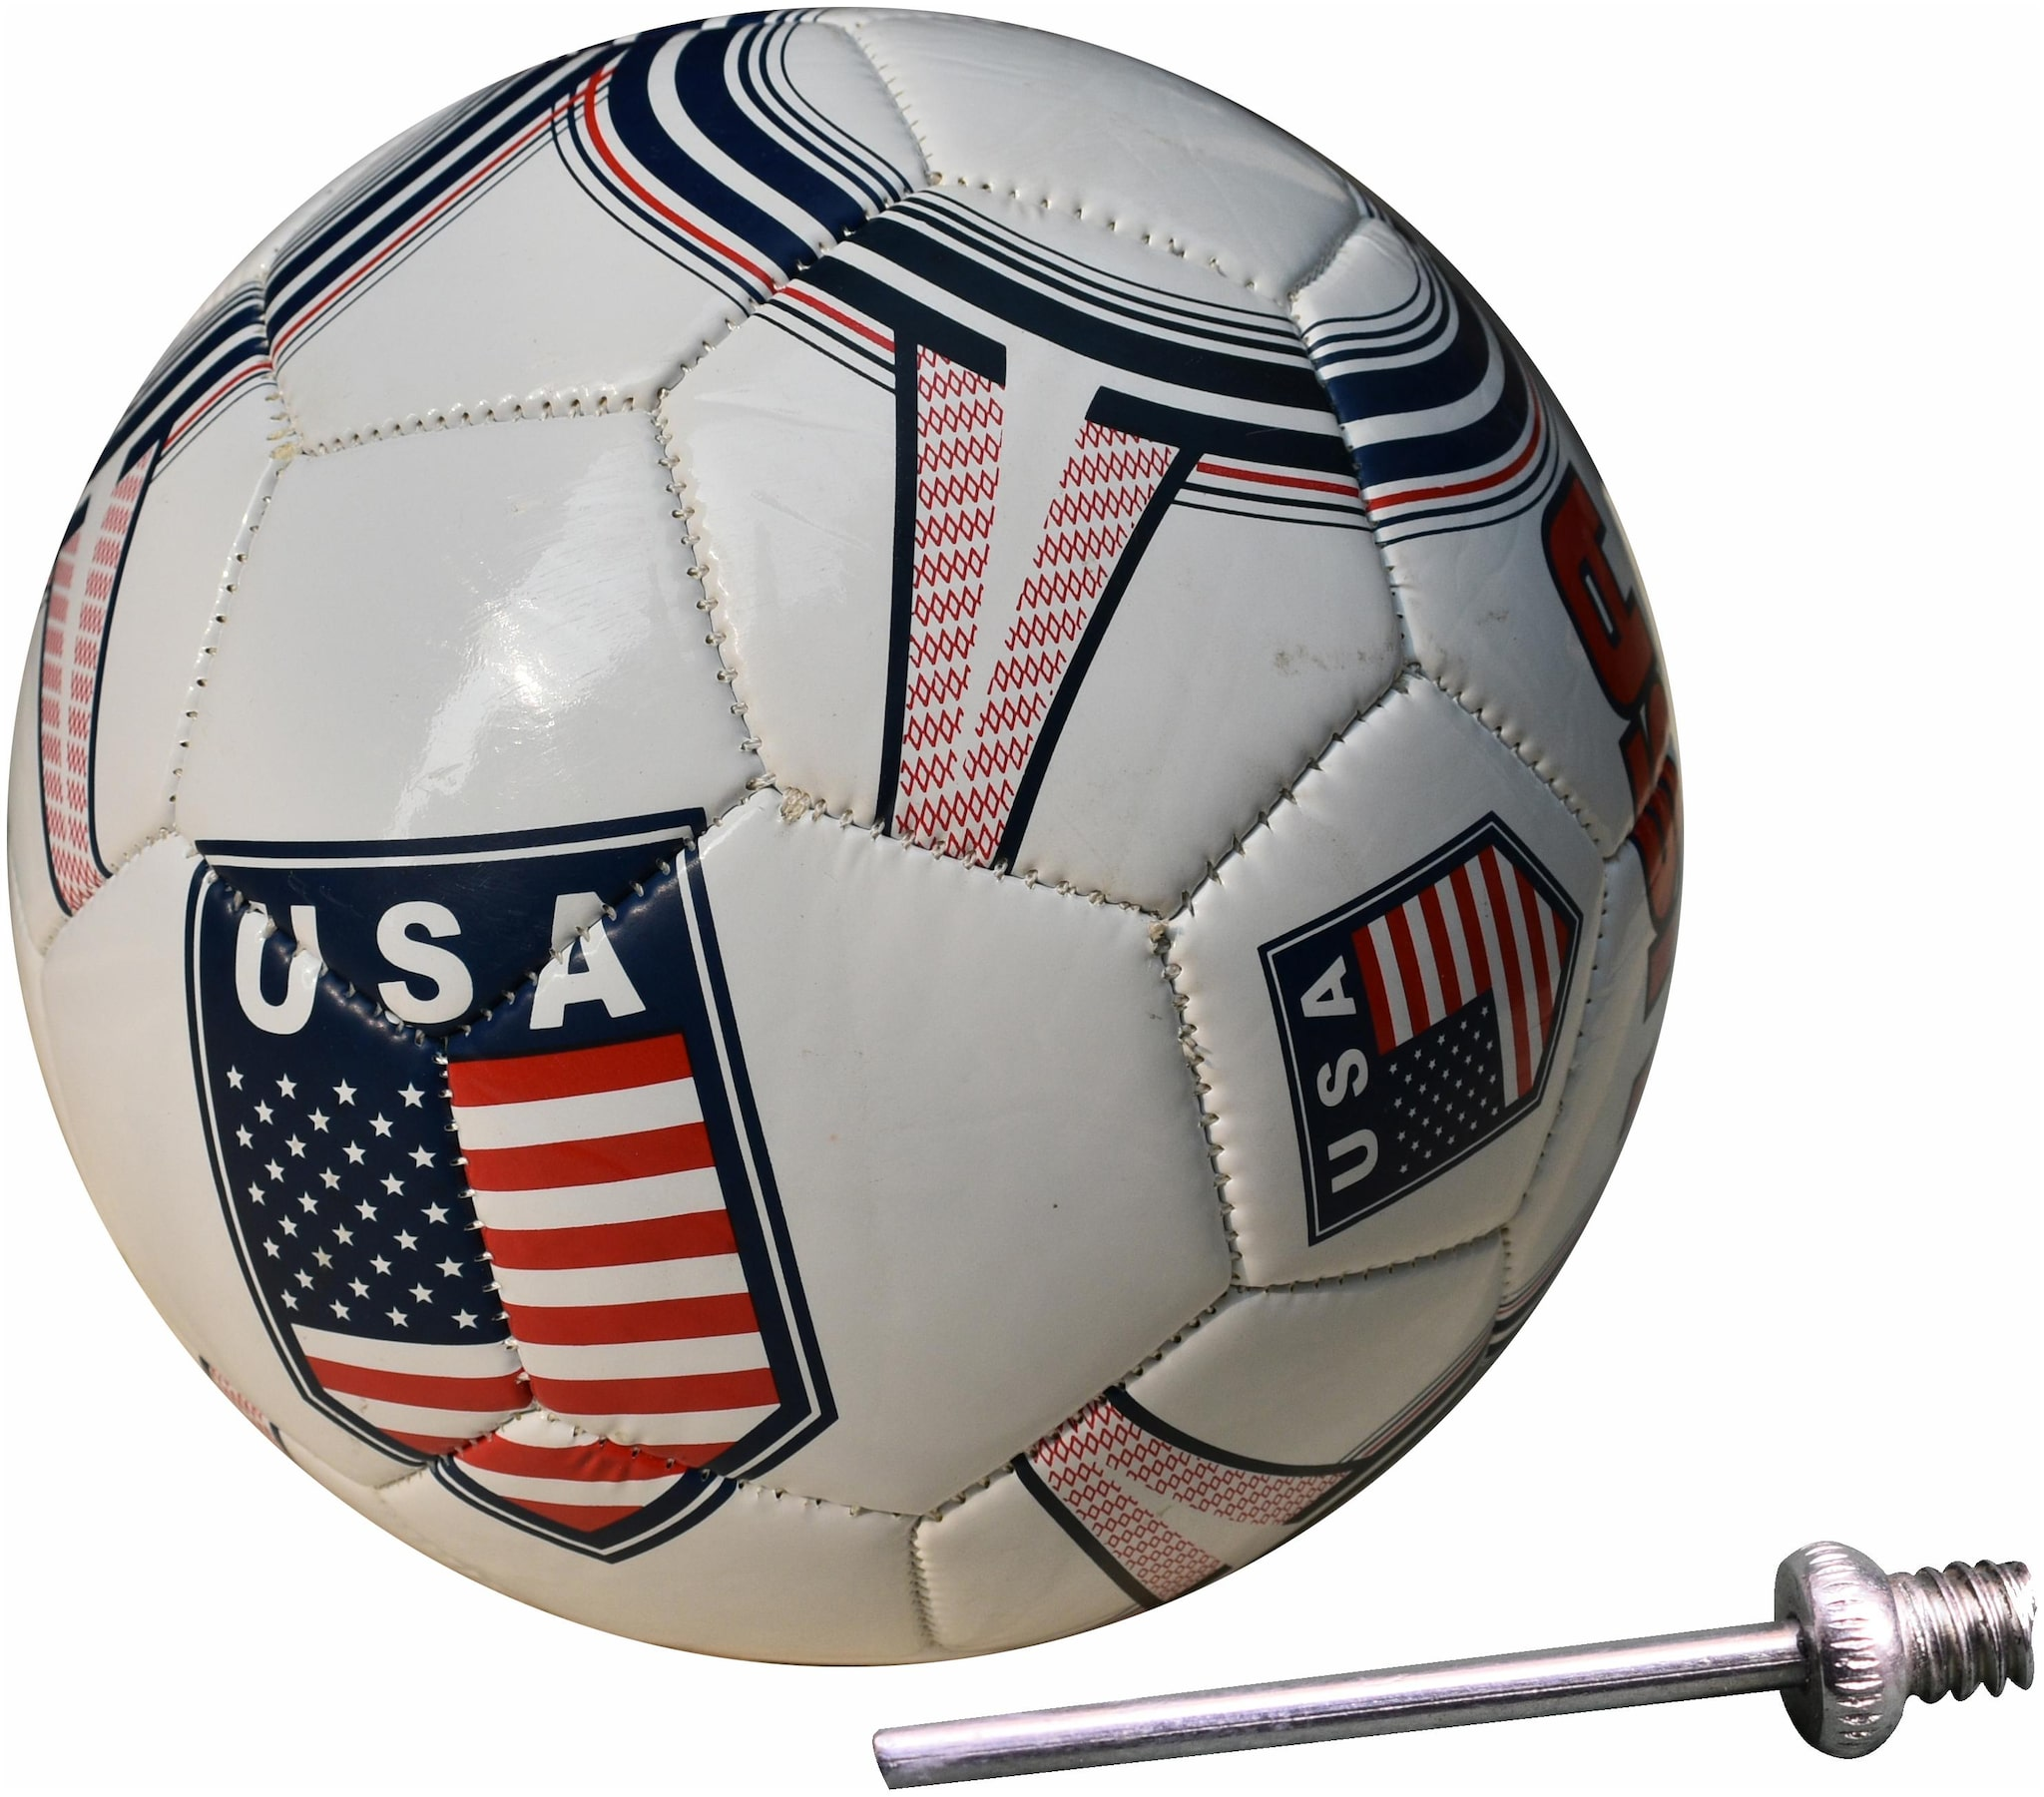 Sports USA Club Offical Multicolor Football   Size: 5 Football   Pack of 1, Multicolor